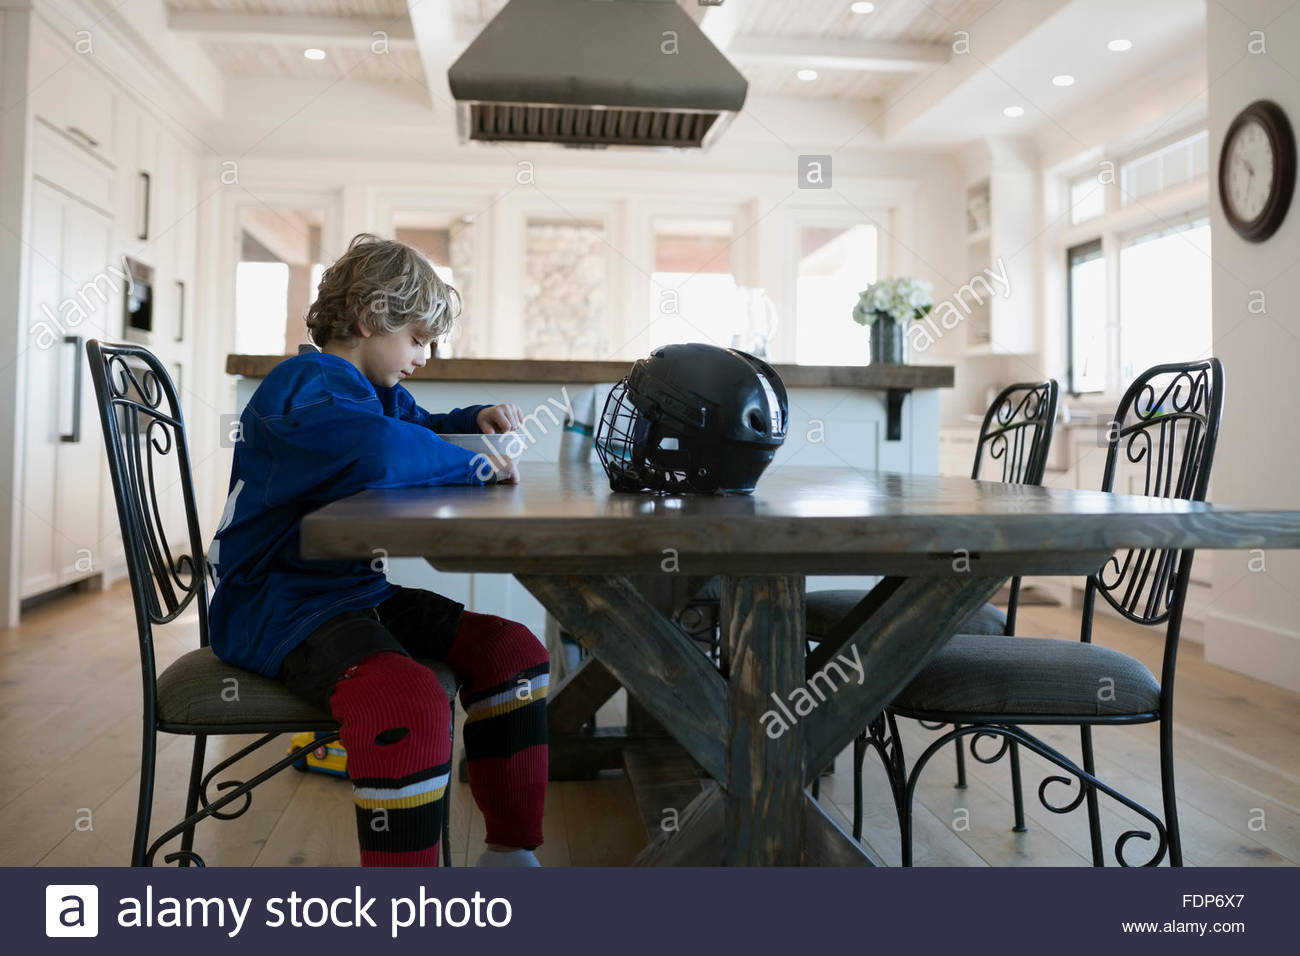 Boy in ice hockey uniform eating cereal table - Stock Image